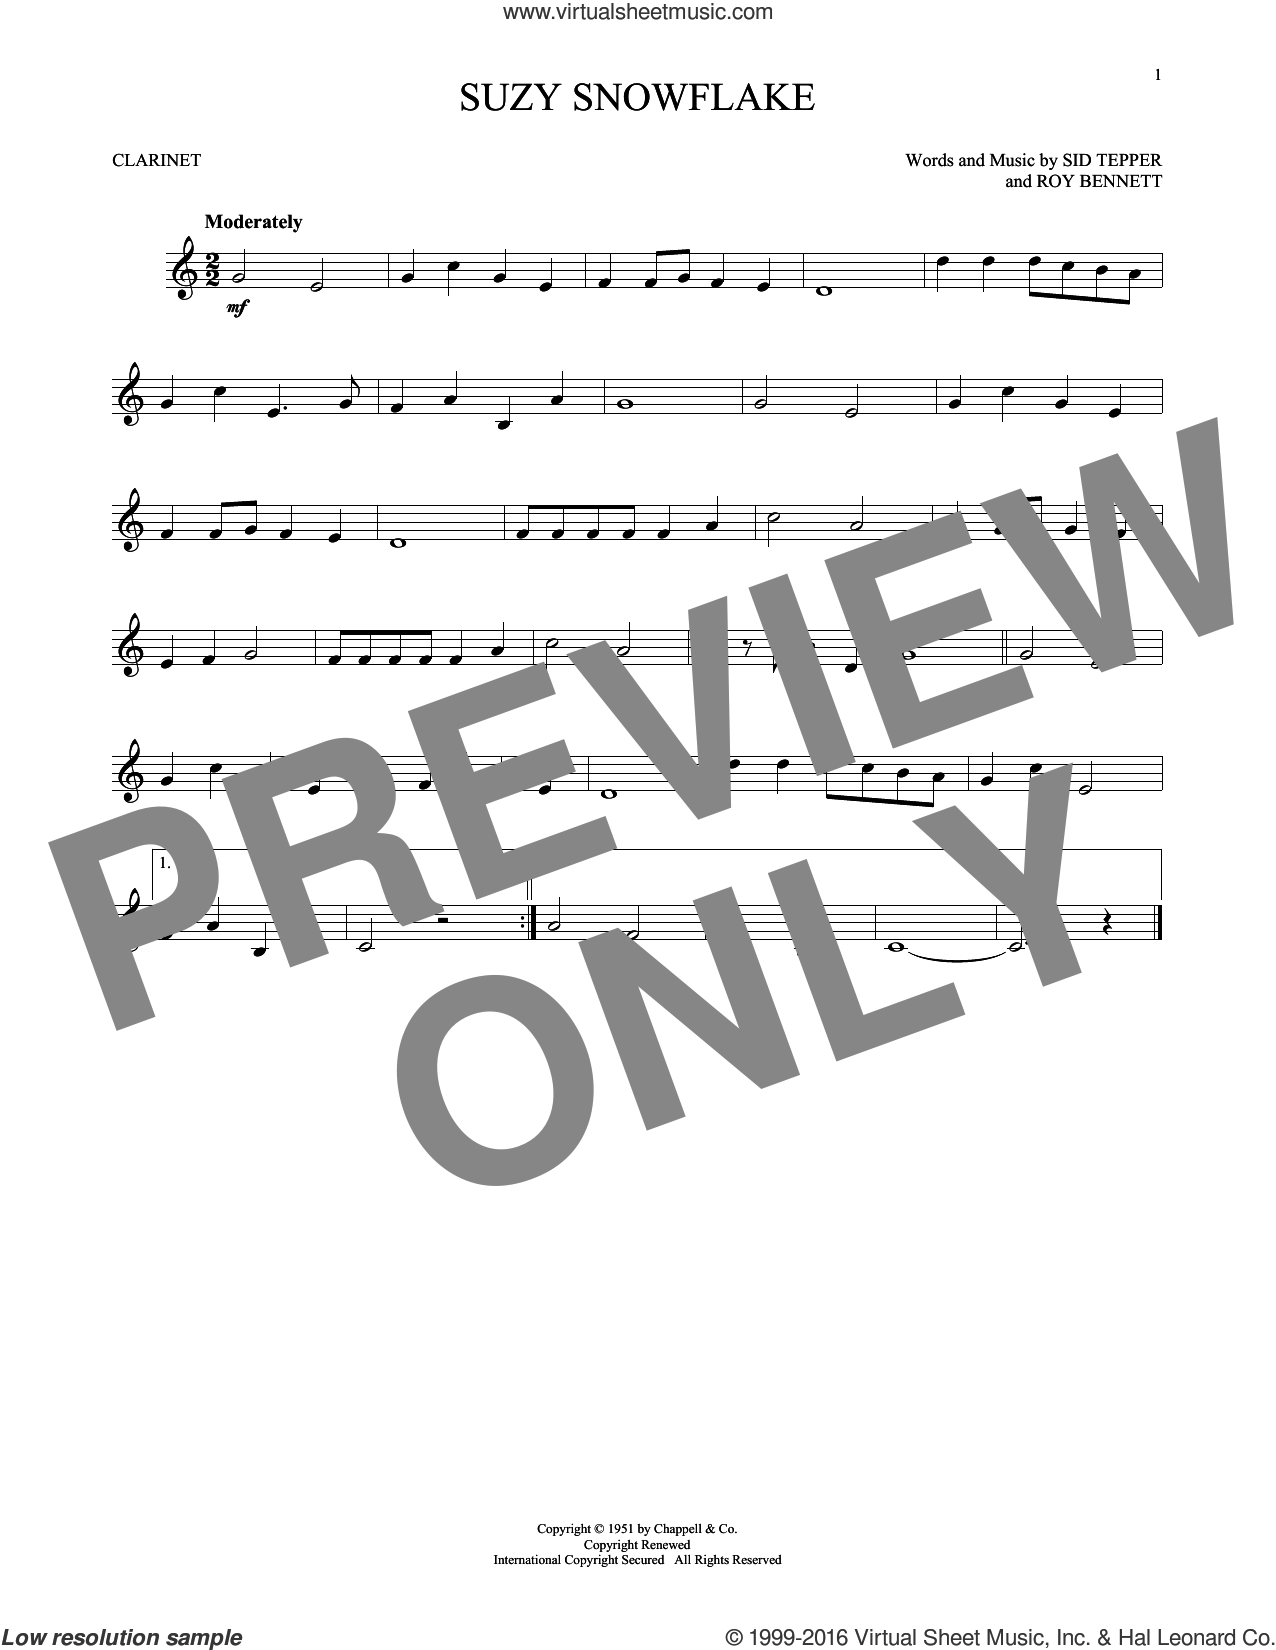 Suzy Snowflake sheet music for clarinet solo by Roy Bennett, Sid Tepper and Sid Tepper and Roy Bennett, intermediate skill level